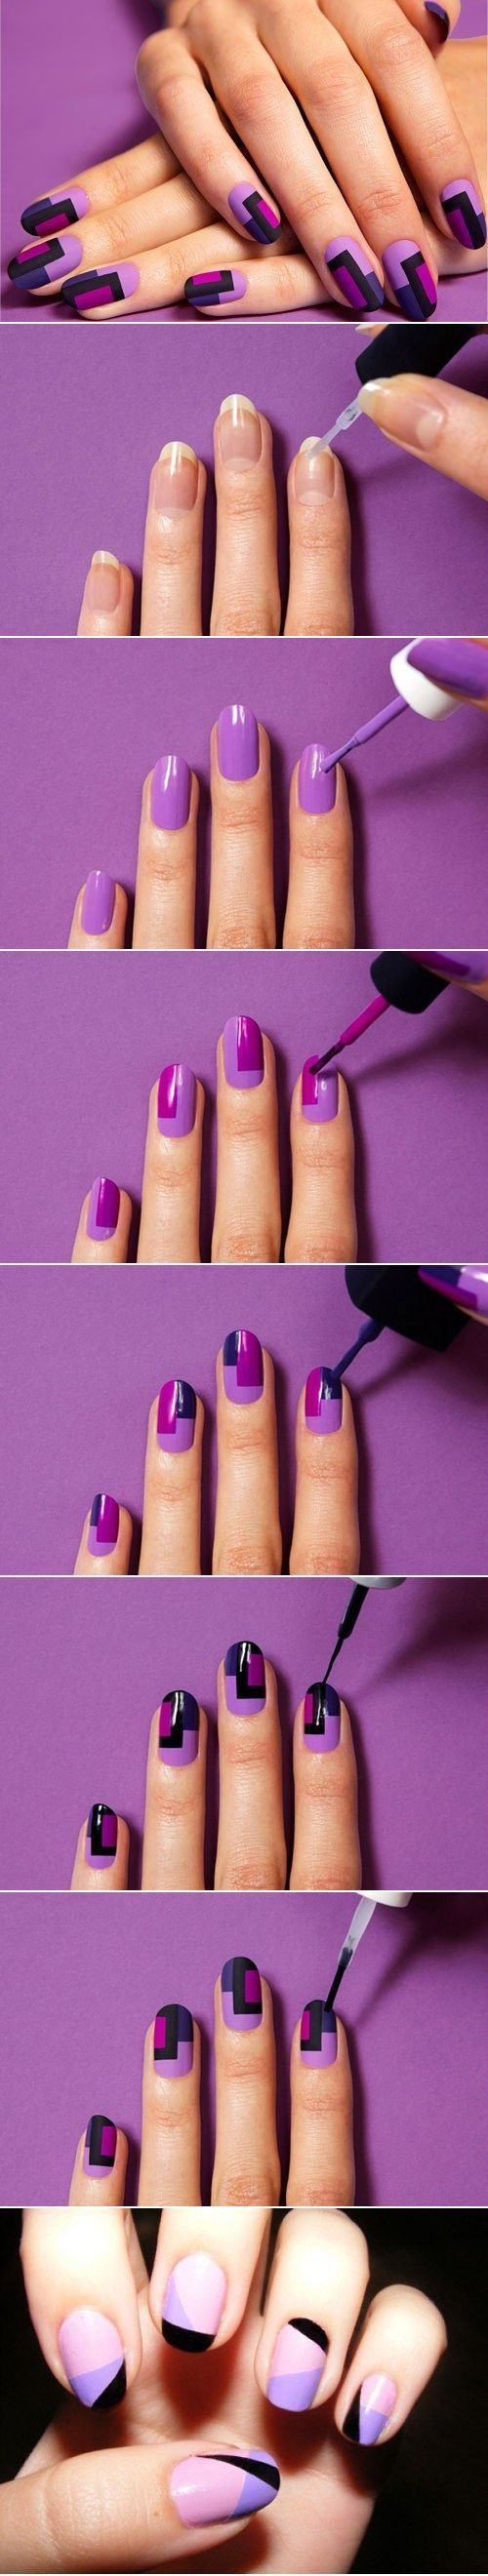 377 best 1001 Diseños de Uñas images on Pinterest